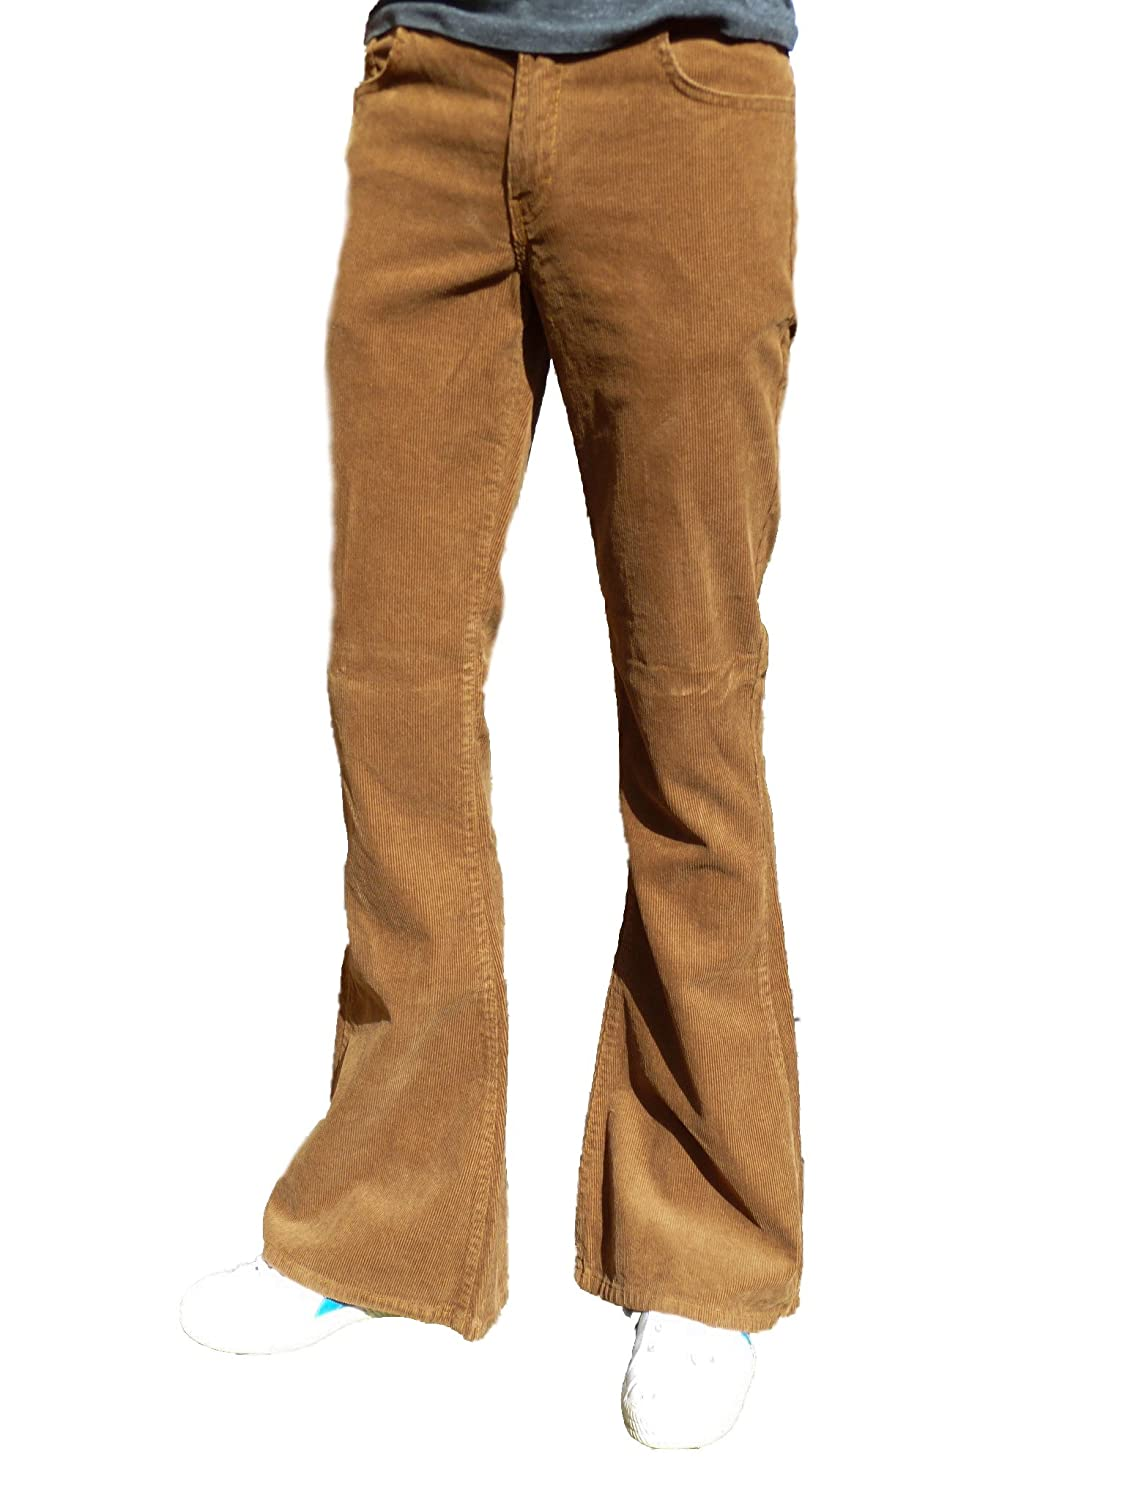 1960s Men's Clothing, 70s Men's Fashion Fuzzdandy Mens Bell Bottoms Flares Pants Tan Tobacco Brown Ginger Corduroy Retro $50.60 AT vintagedancer.com